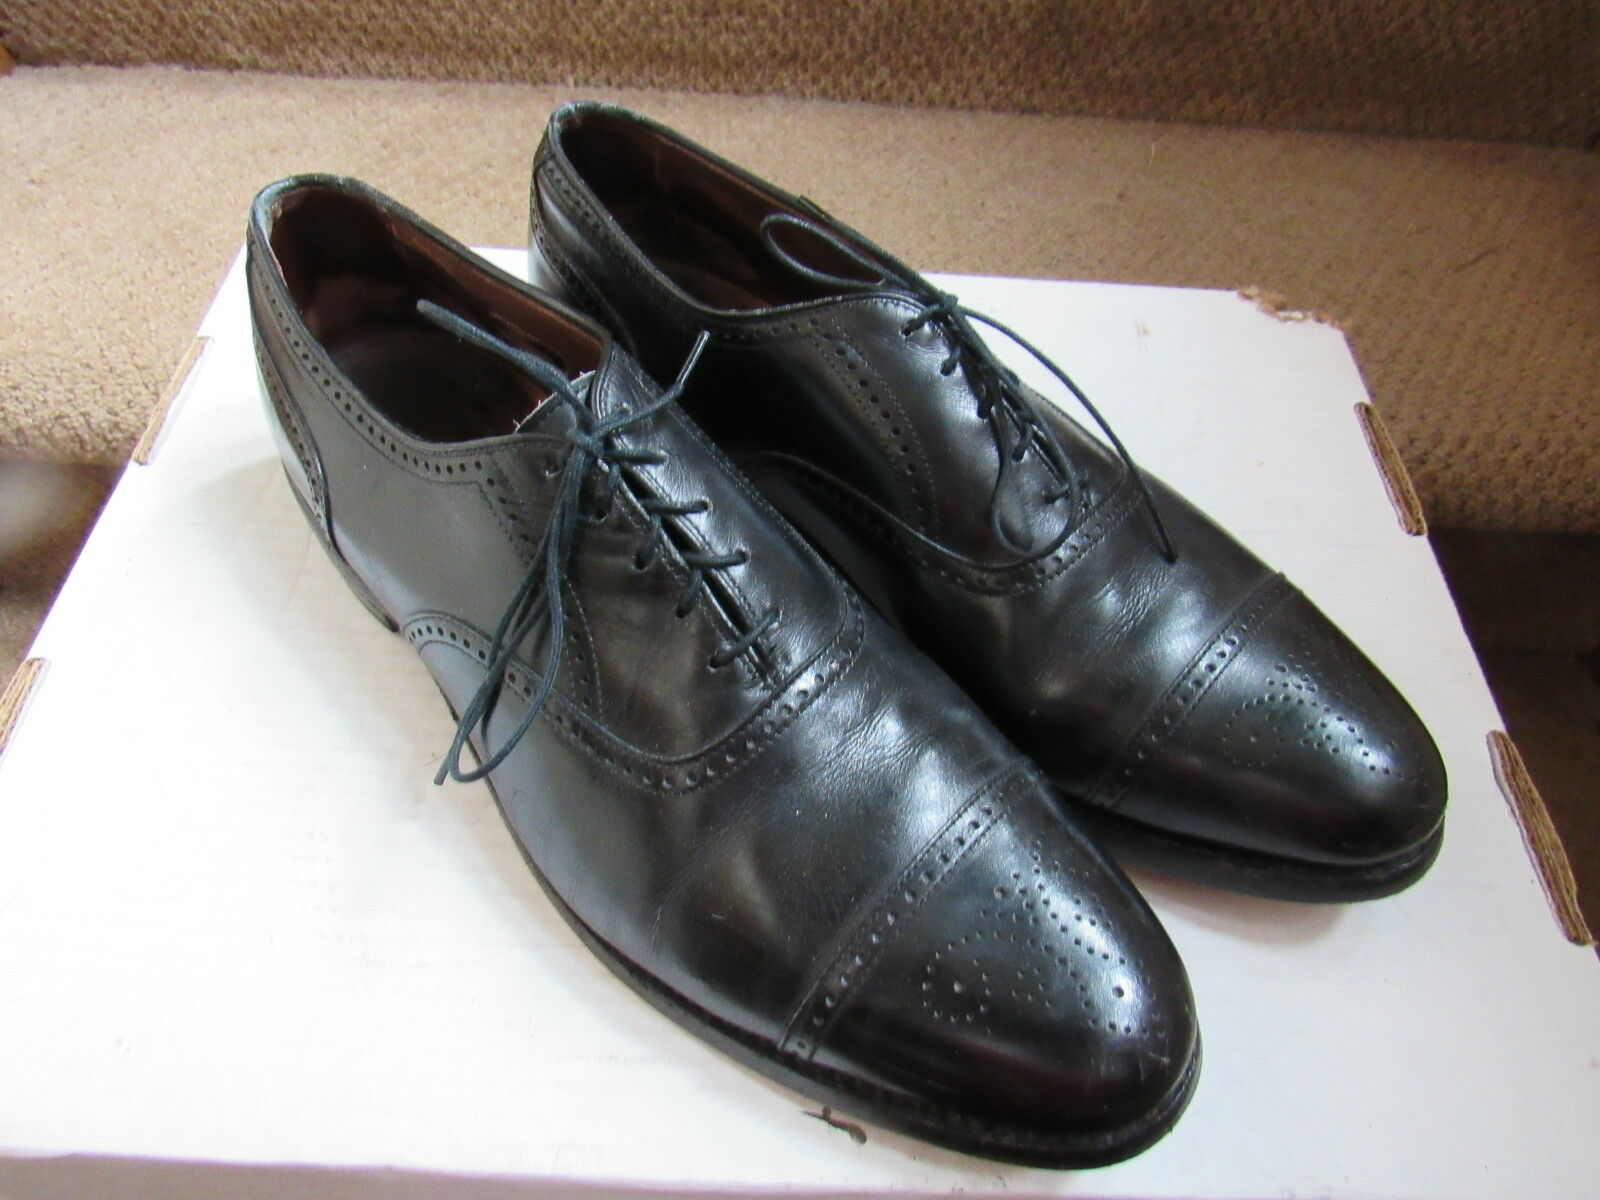 PAIR OF ALLEN EDMONDS STRATTON WING B TIP OXFORD BLACK DRESS Schuhe SIZE 11.5 B WING 1ed827